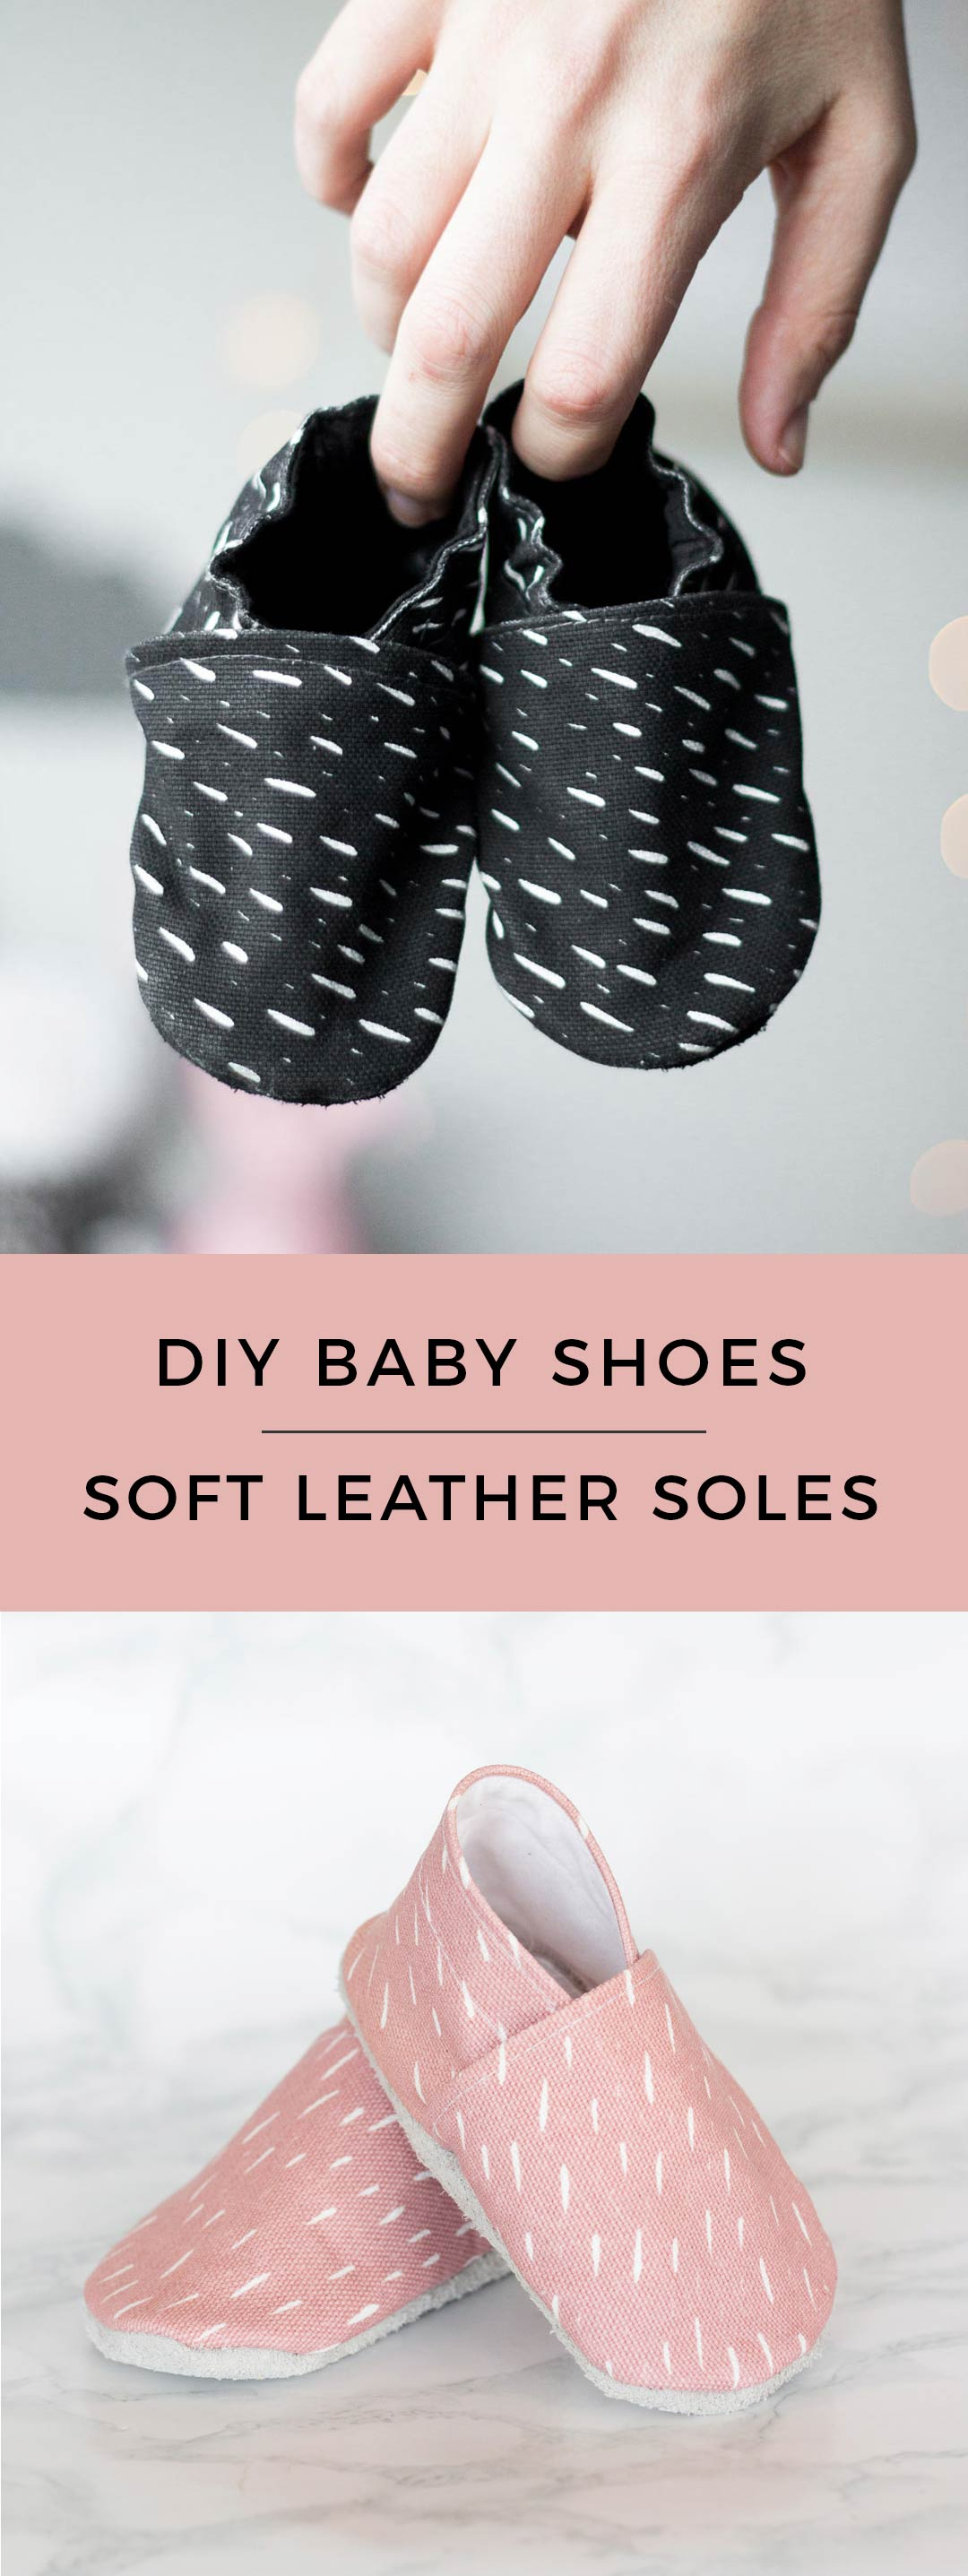 DIY Soft Sole Toddler Shoes - Baby Shoes with a leather sole - Includes pattern